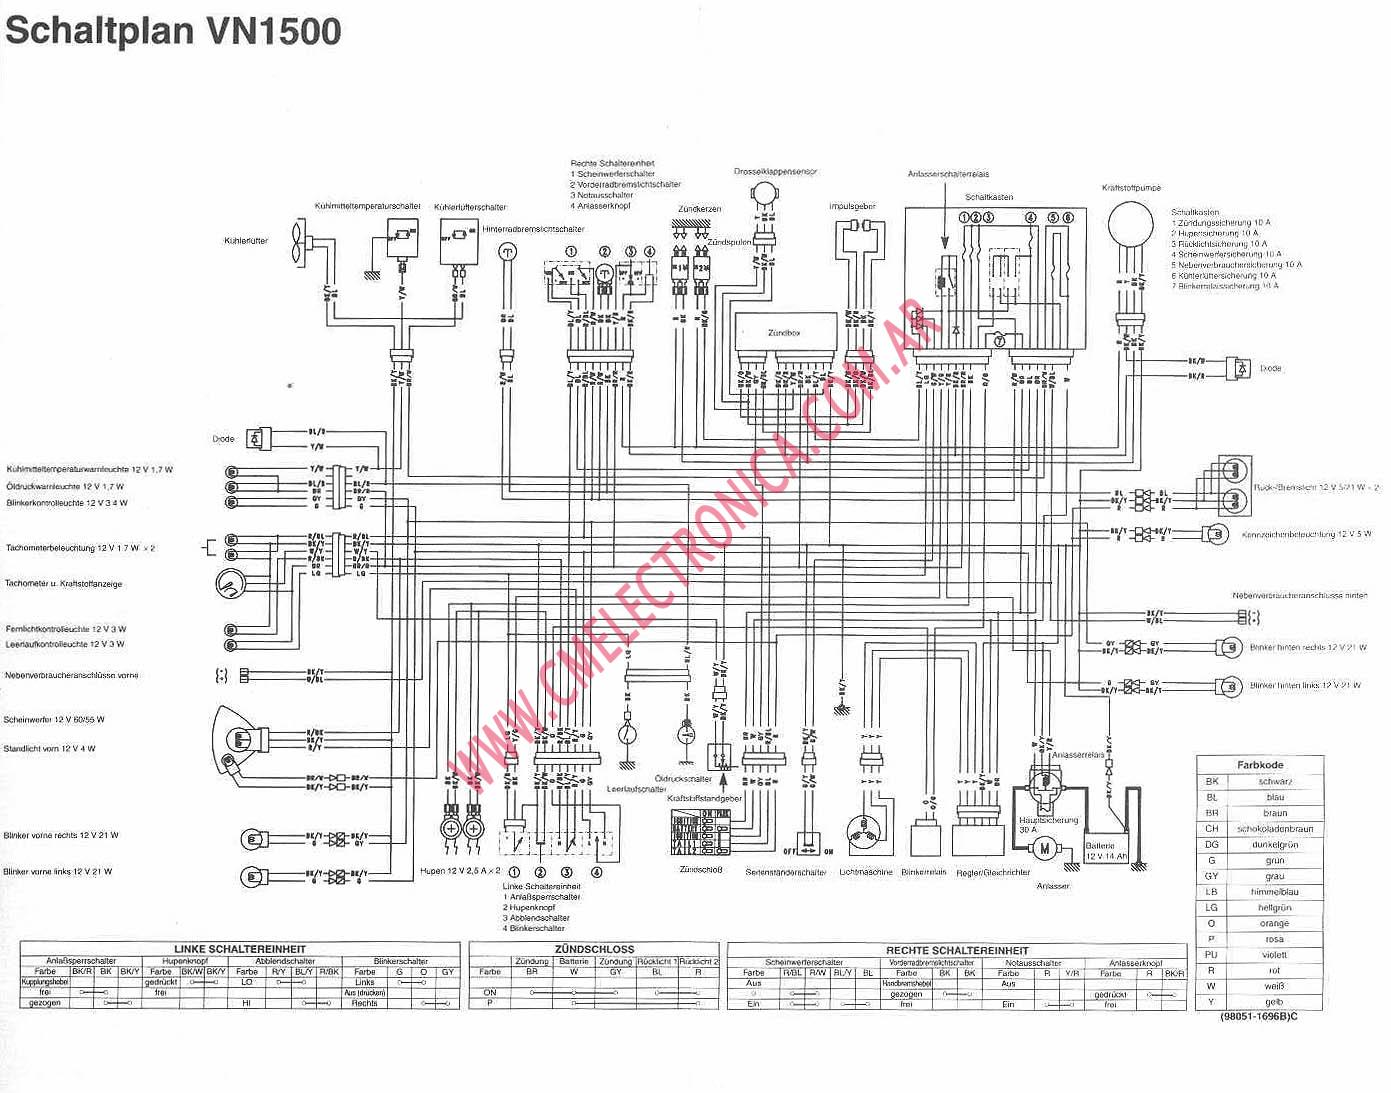 Wiring Diagrams 250 Yamaha in addition 9881 Colored Wiring Diagram 2 besides Xt225 Carb Diagram furthermore Gas Engine Control System additionally Kawasaki Kz250 Wiring Diagram. on wiring diagram yamaha xt225